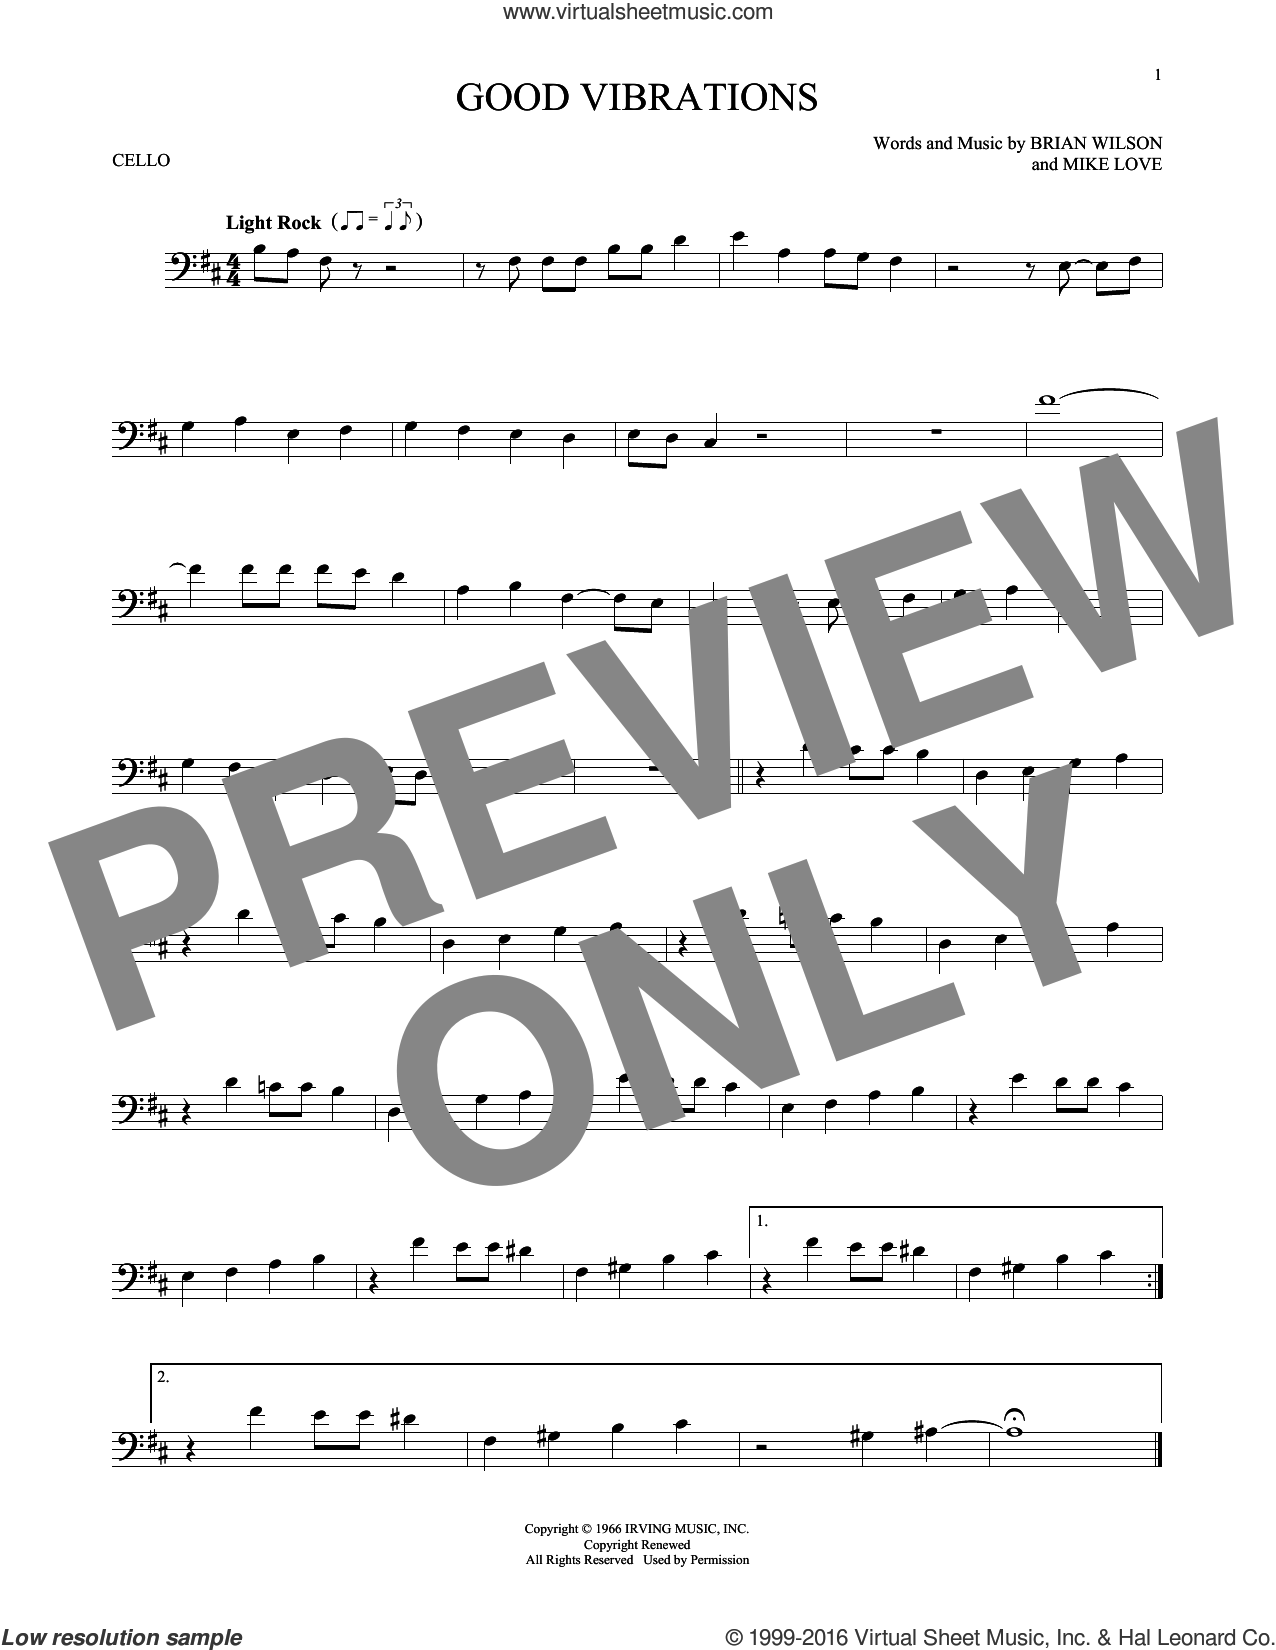 Good Vibrations sheet music for cello solo by The Beach Boys, Brian Wilson and Mike Love, intermediate skill level